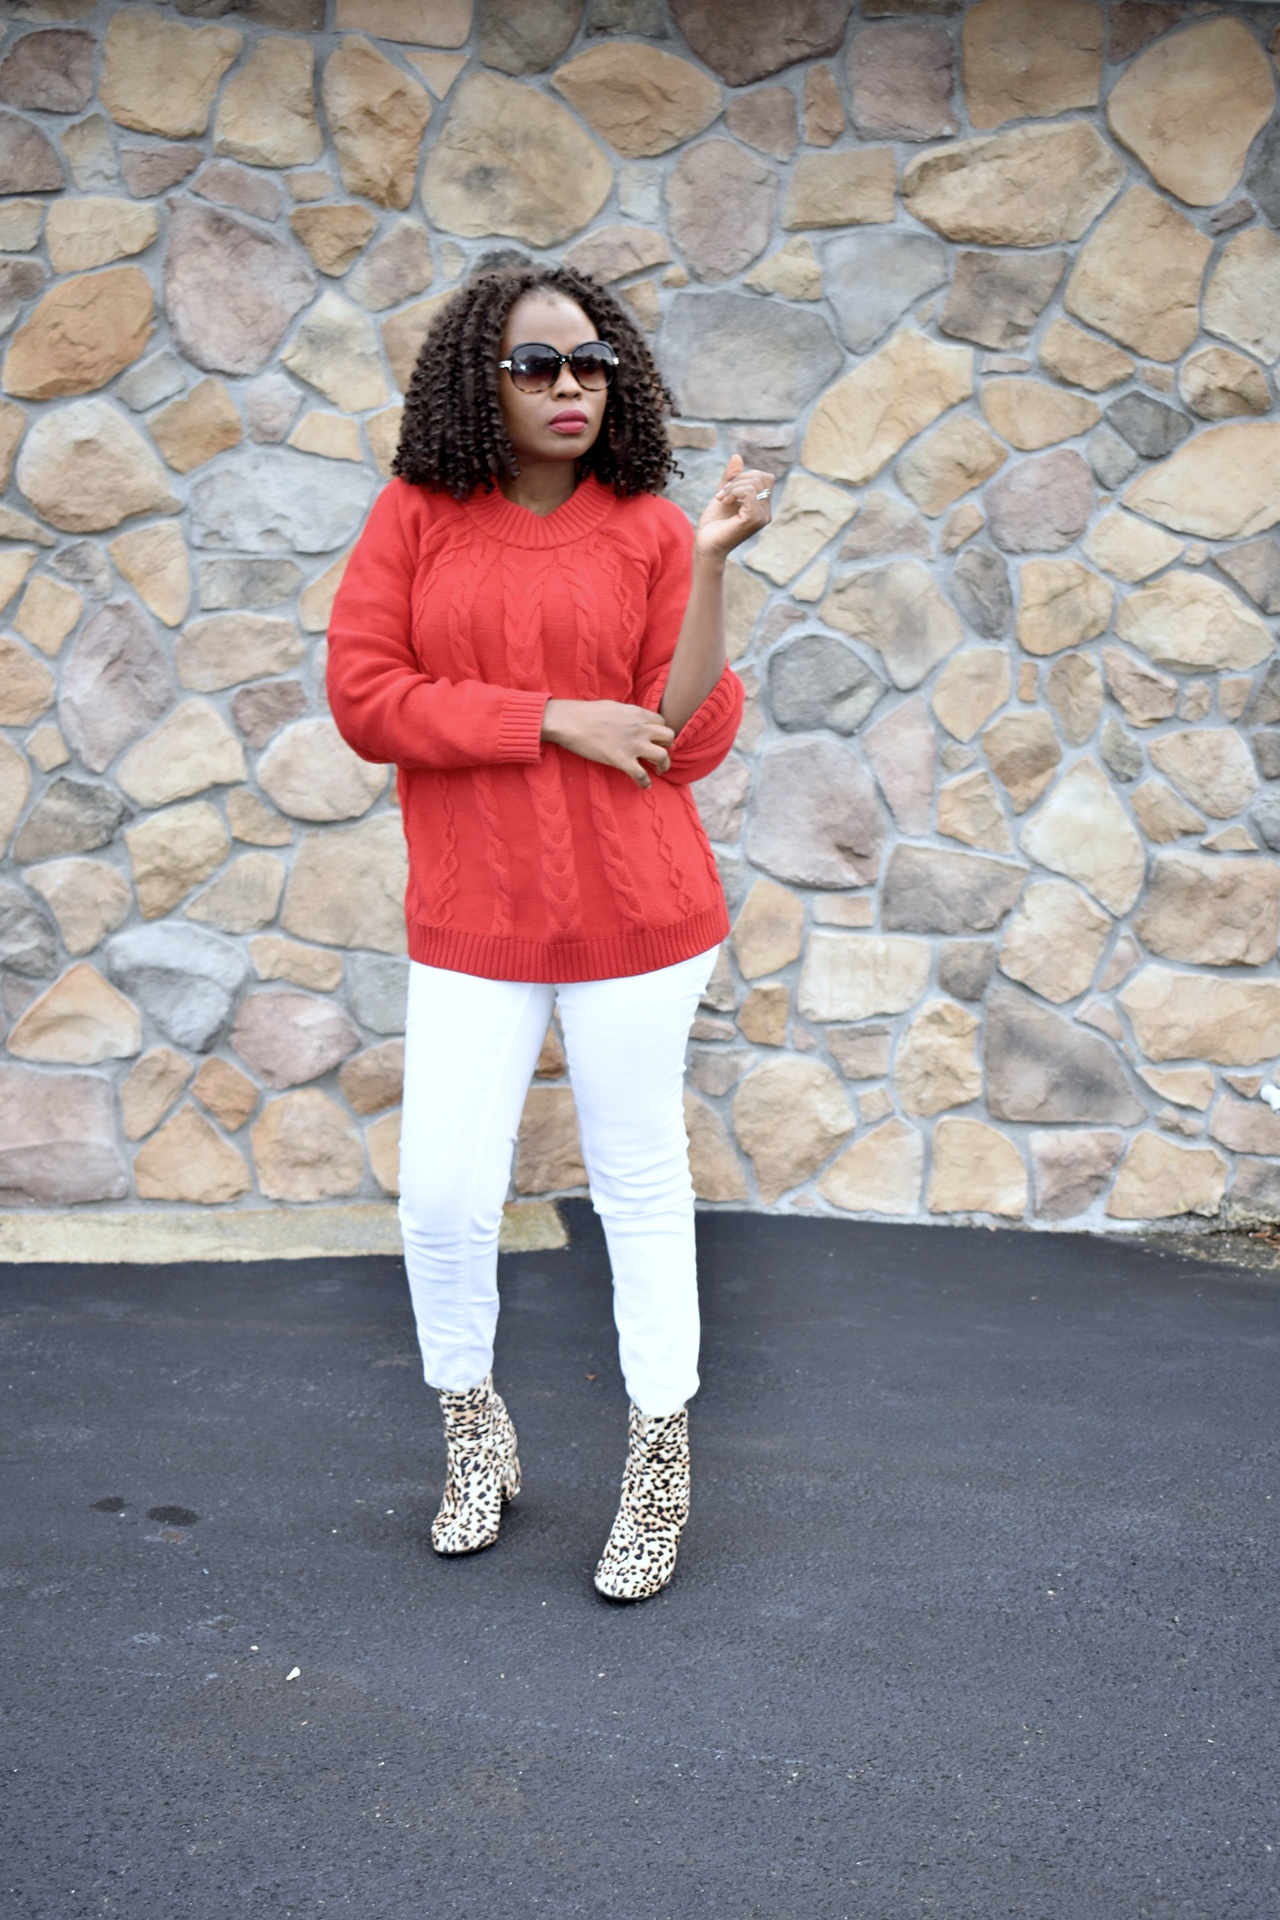 Red, white and leopard outfit. graphic